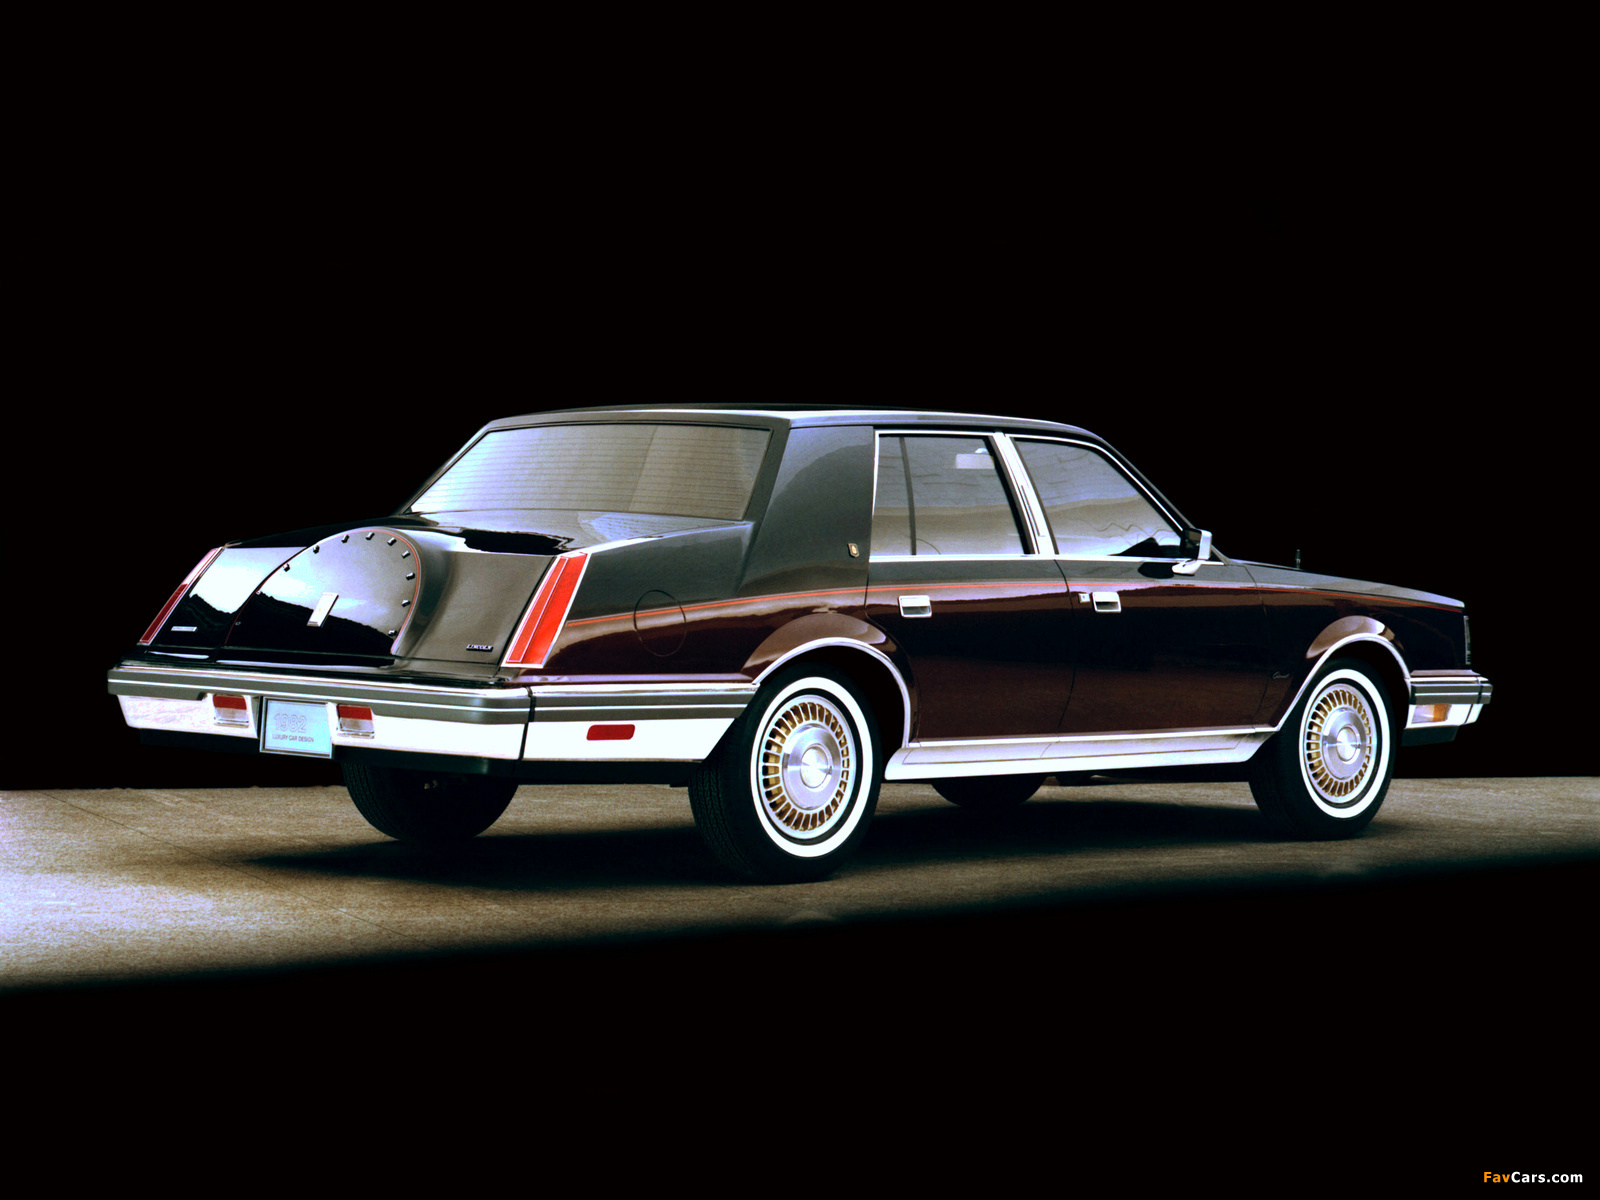 Chevrolet Corvette 1982: Review, Amazing Pictures and